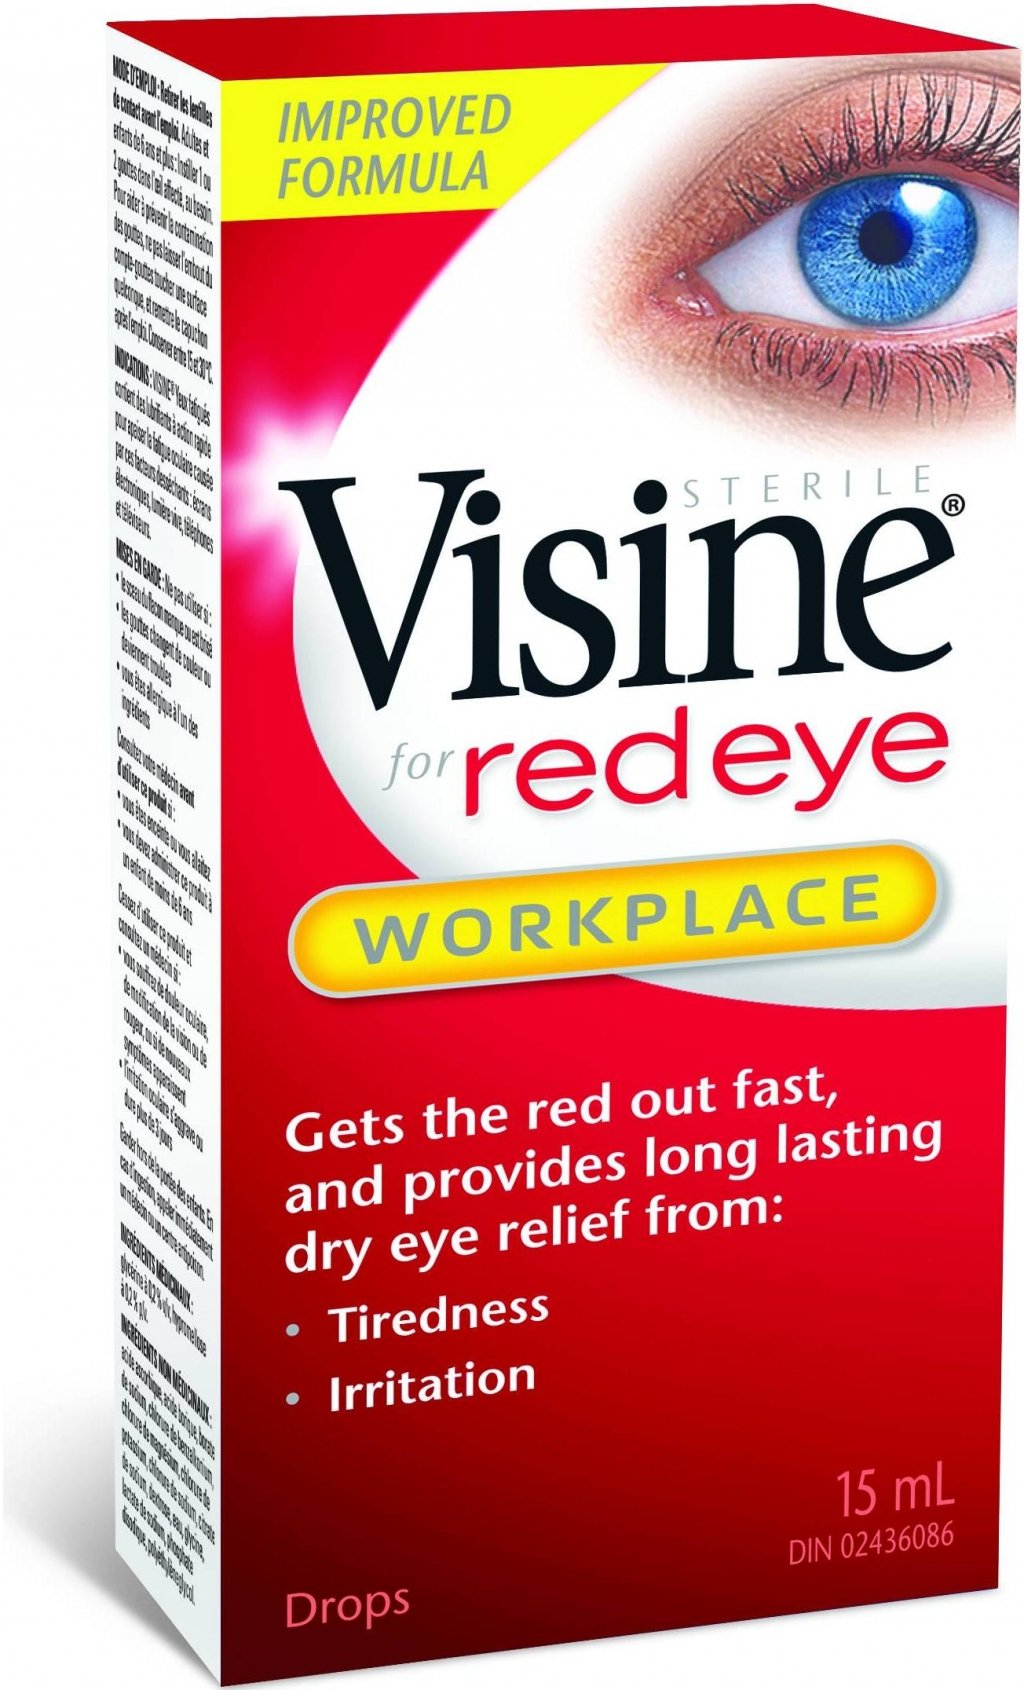 Visine for Red Eye Workplace